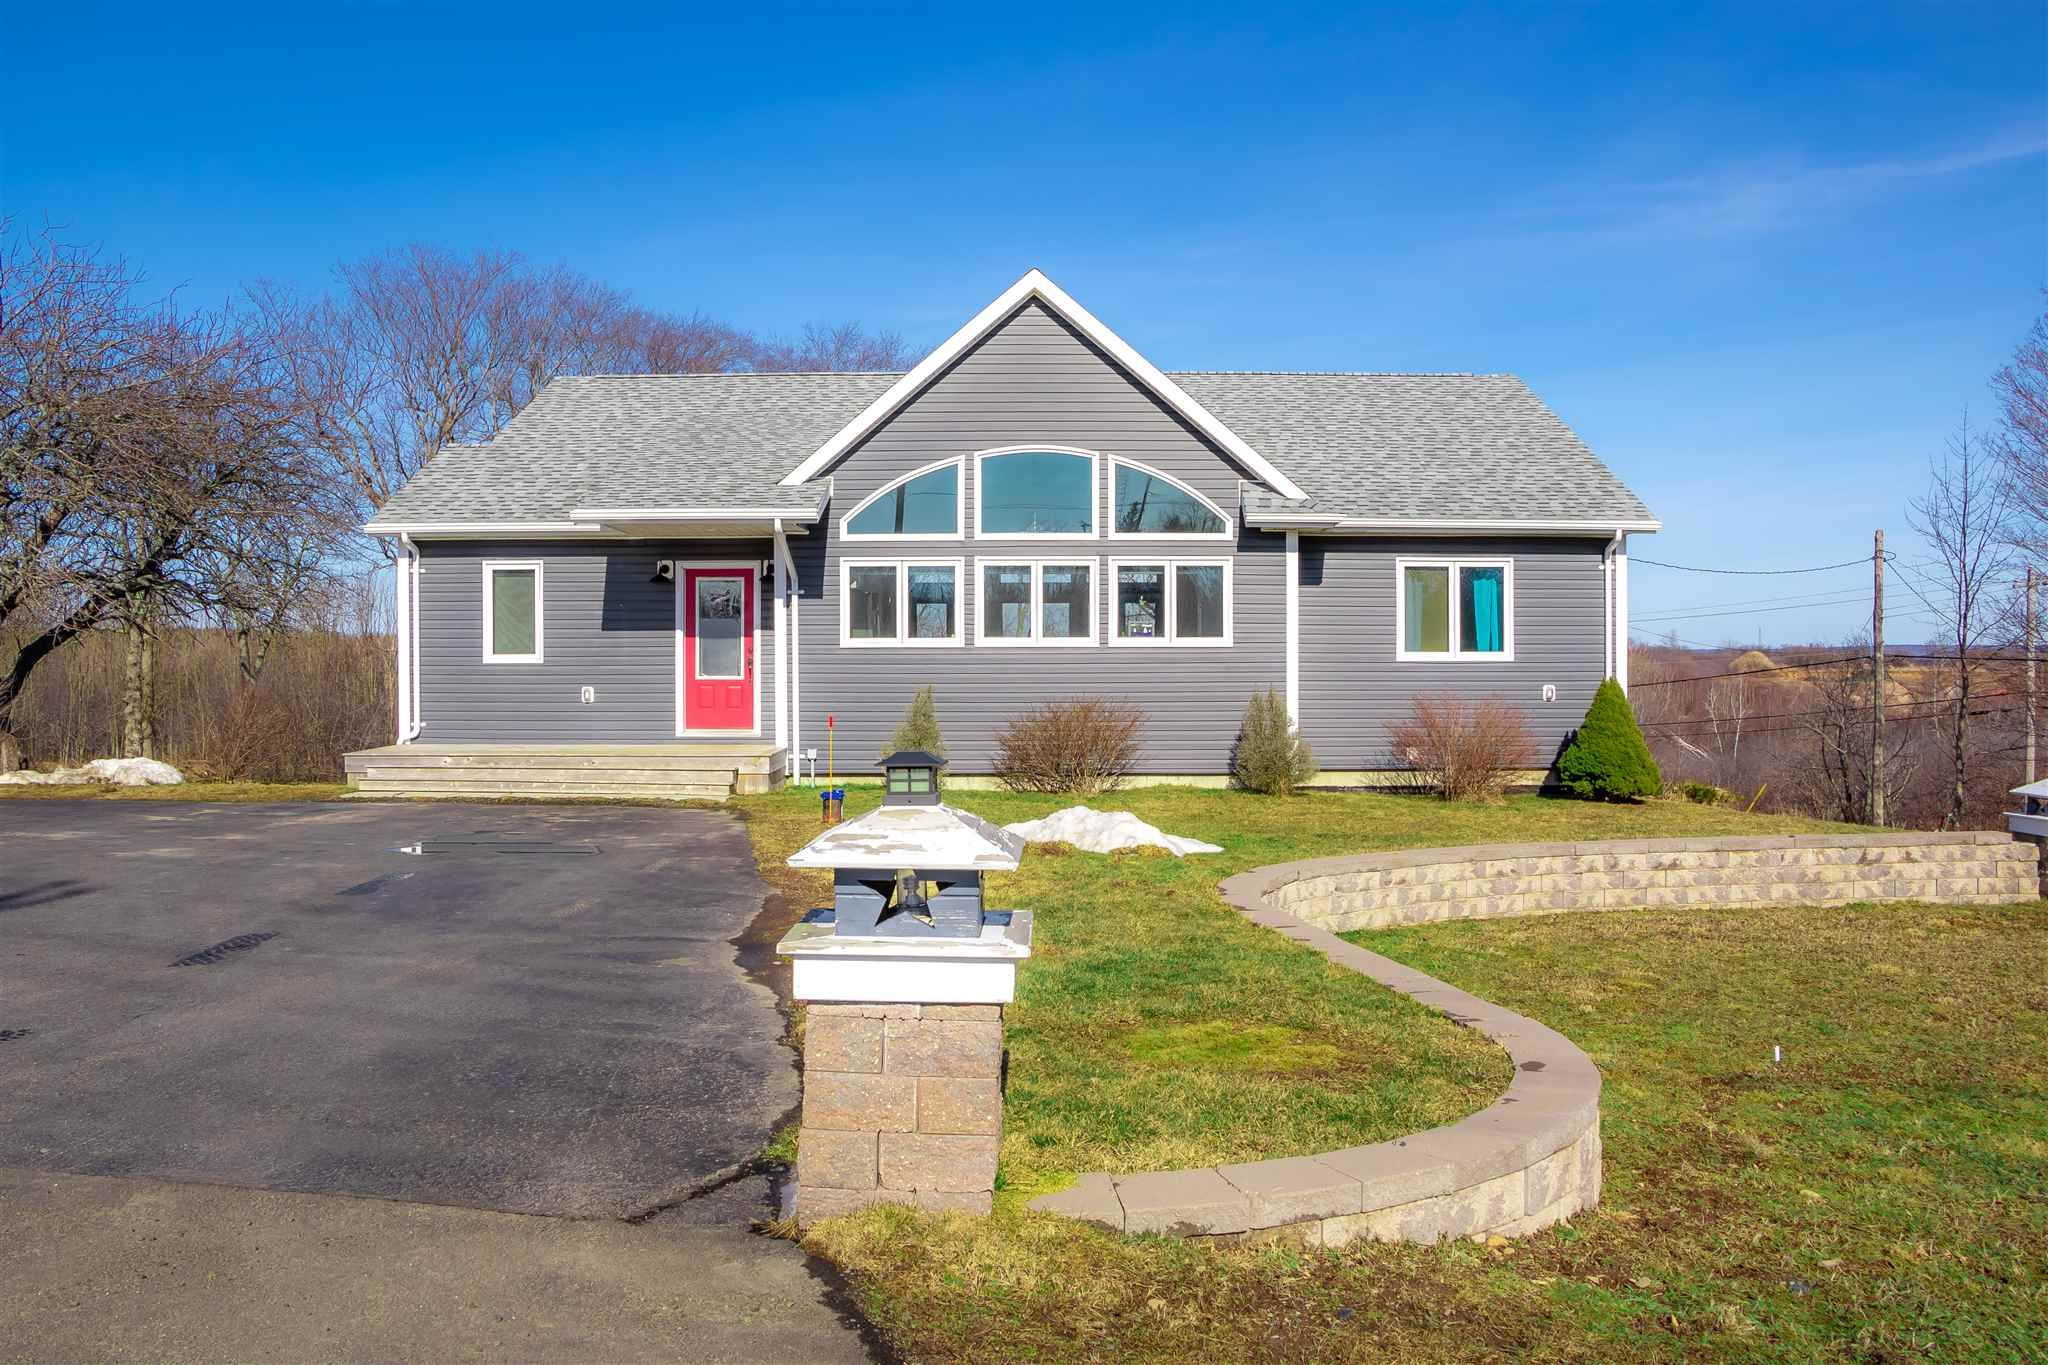 Main Photo: 8 UPPER CROSS Road in Conway: 401-Digby County Residential for sale (Annapolis Valley)  : MLS®# 202104734